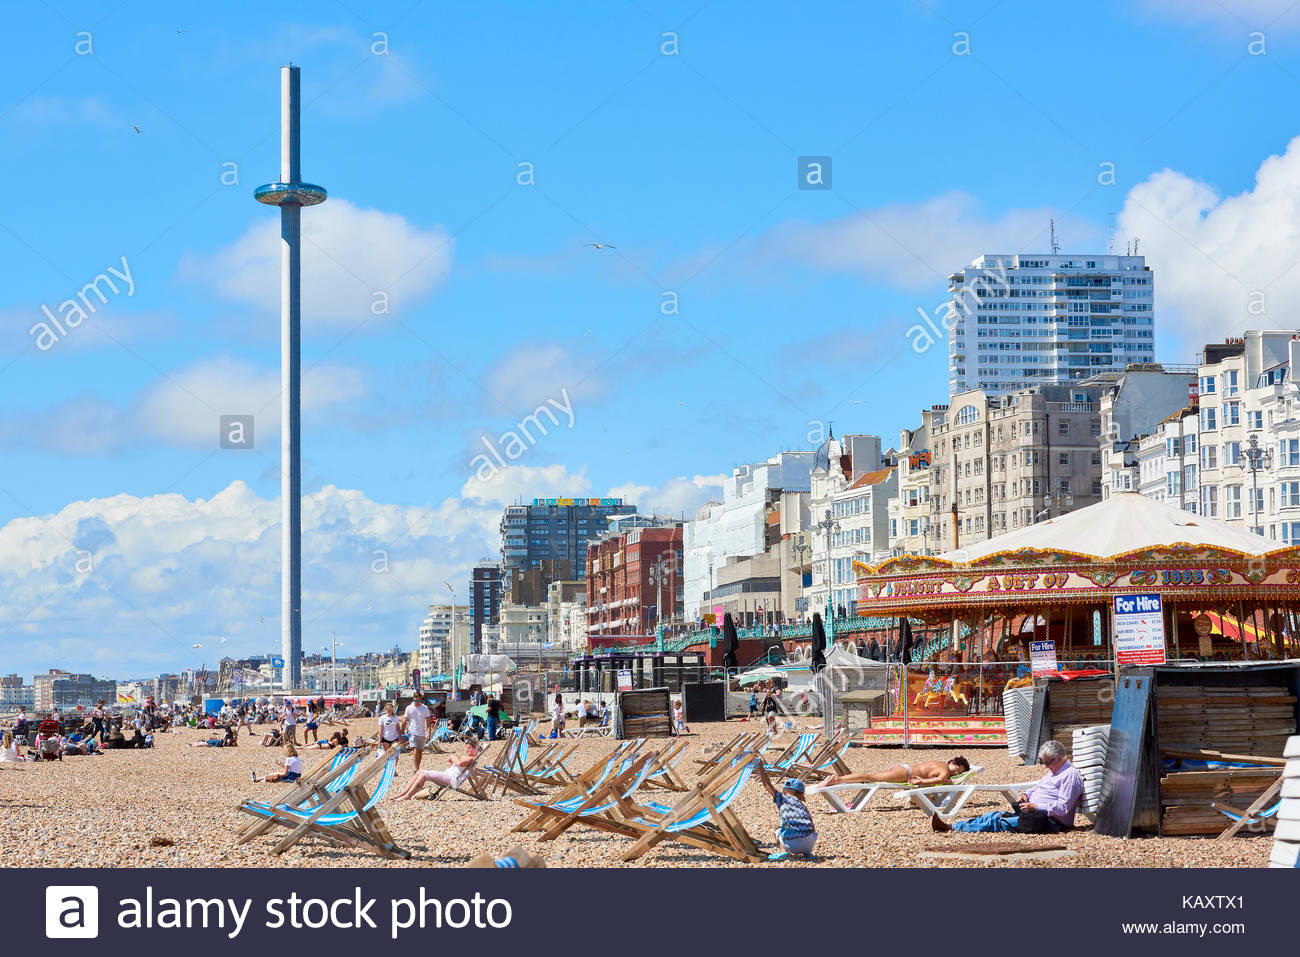 Beachgoers enjoy the sun in Brighton with British Airways i360 1300x957